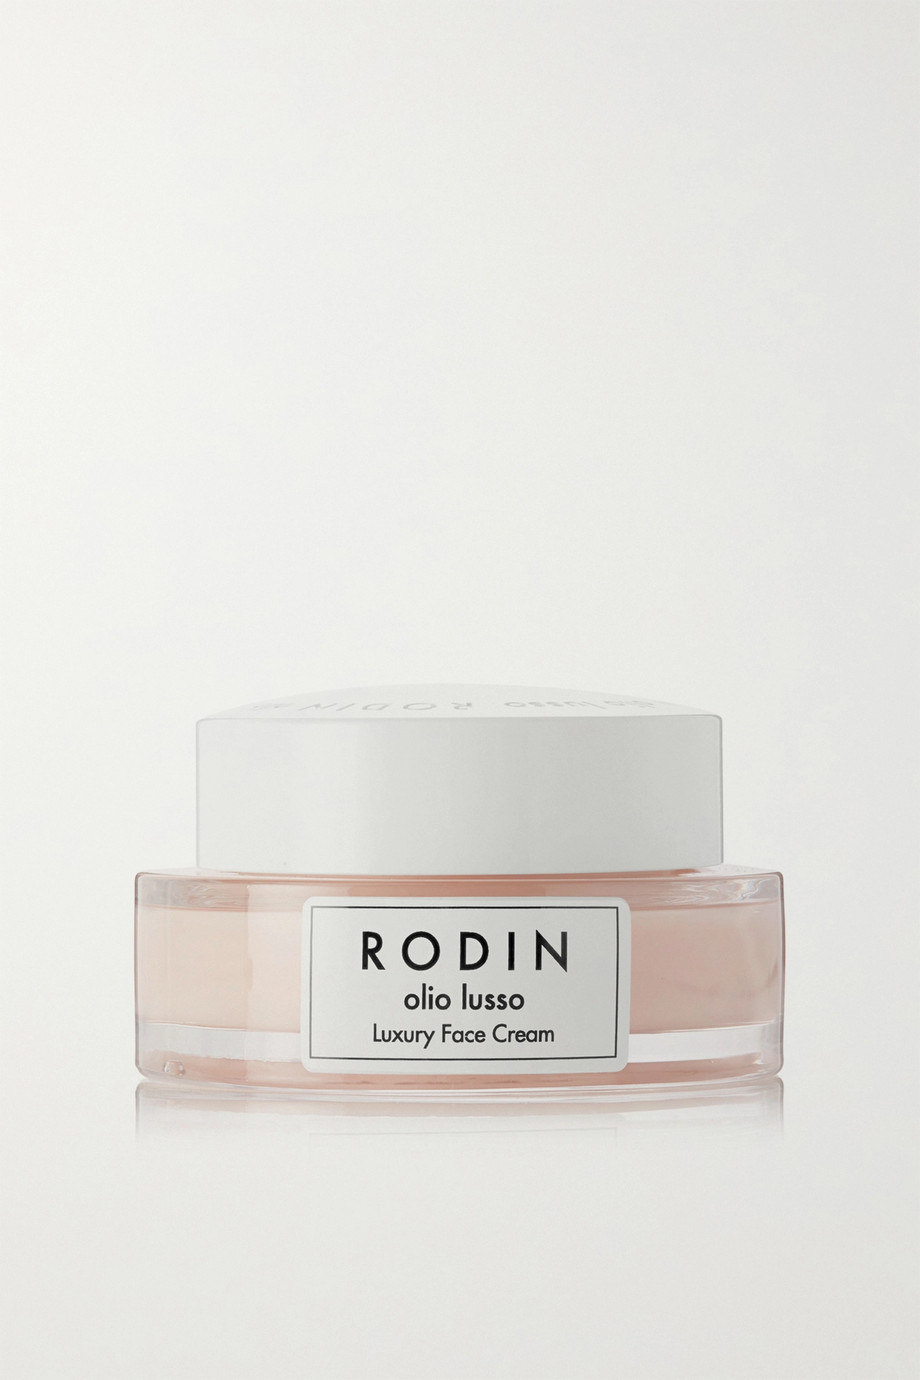 Rodin Luxury Face Cream, 50ml